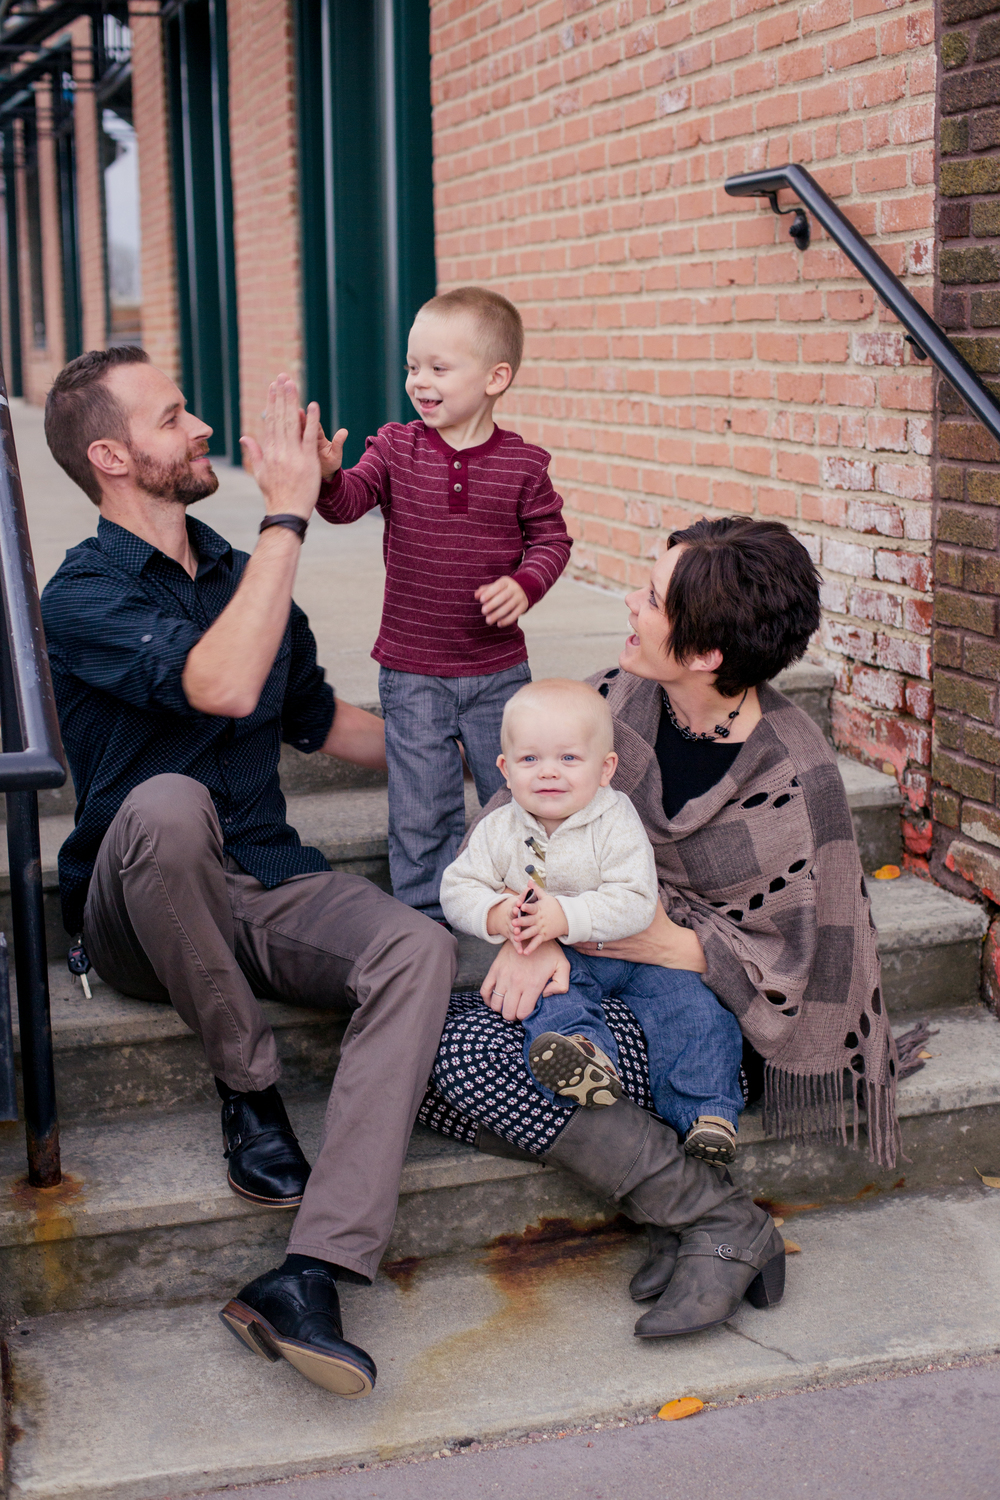 the jonas family: jason&nicole w/ finley(3)&Emmett(1)